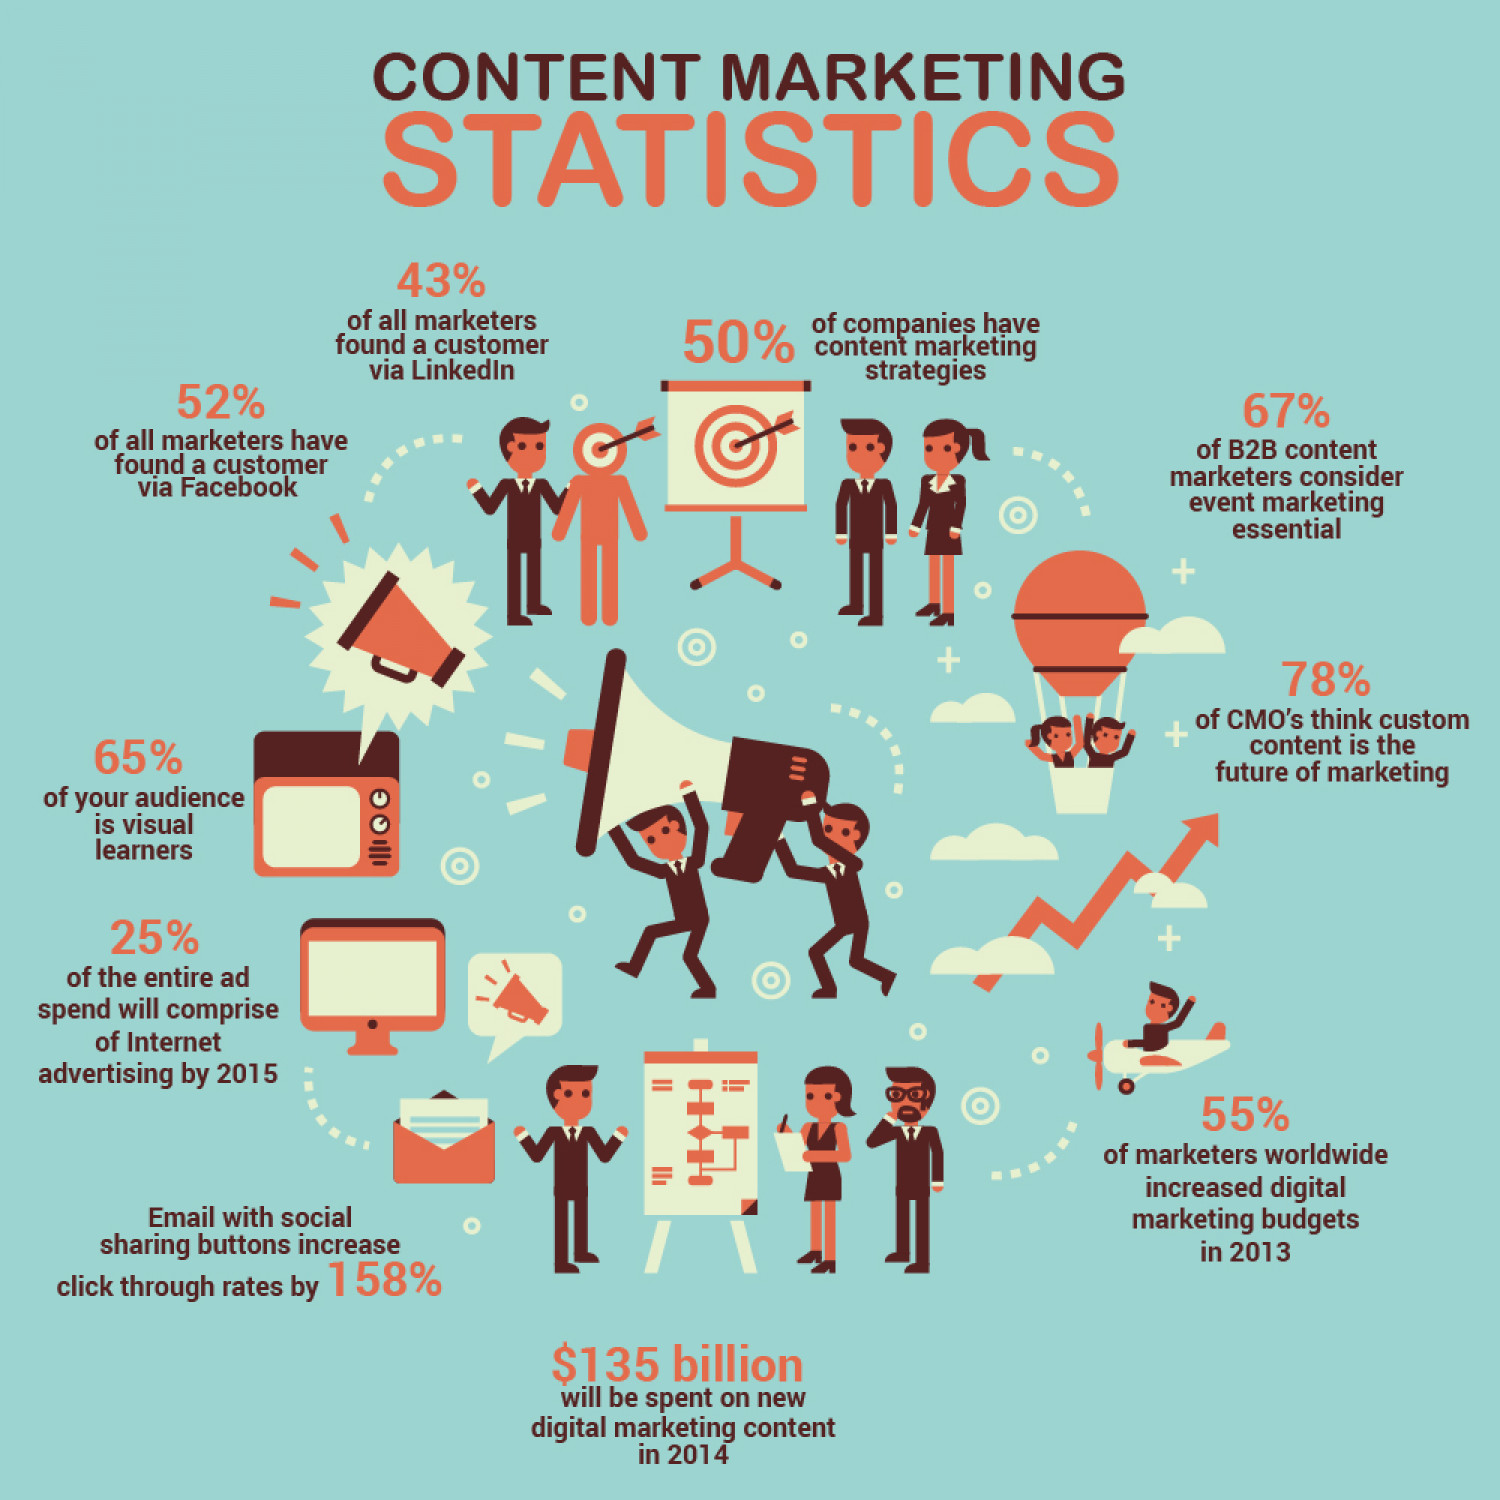 Content Marketing Facts in 2014 Infographic